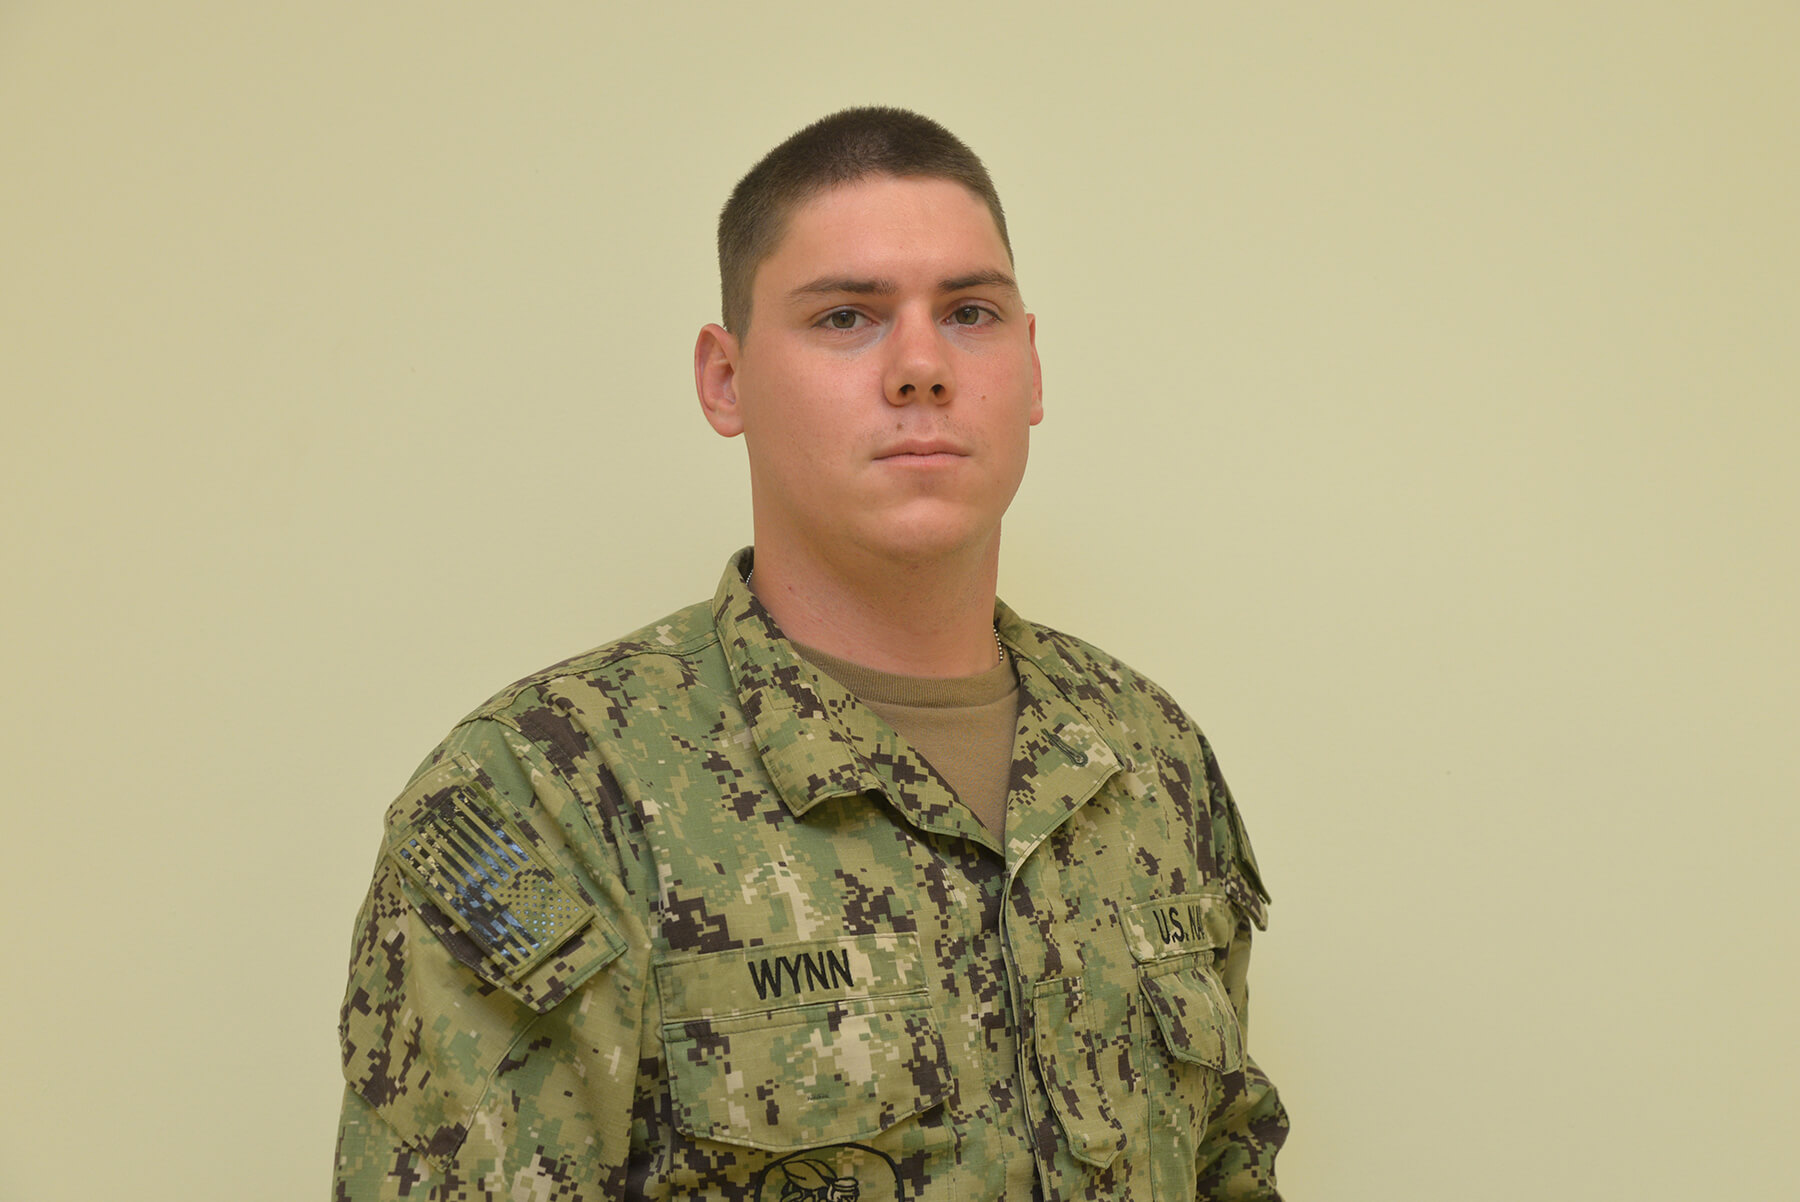 Fairhope native serves with U.S. Navy construction battalion